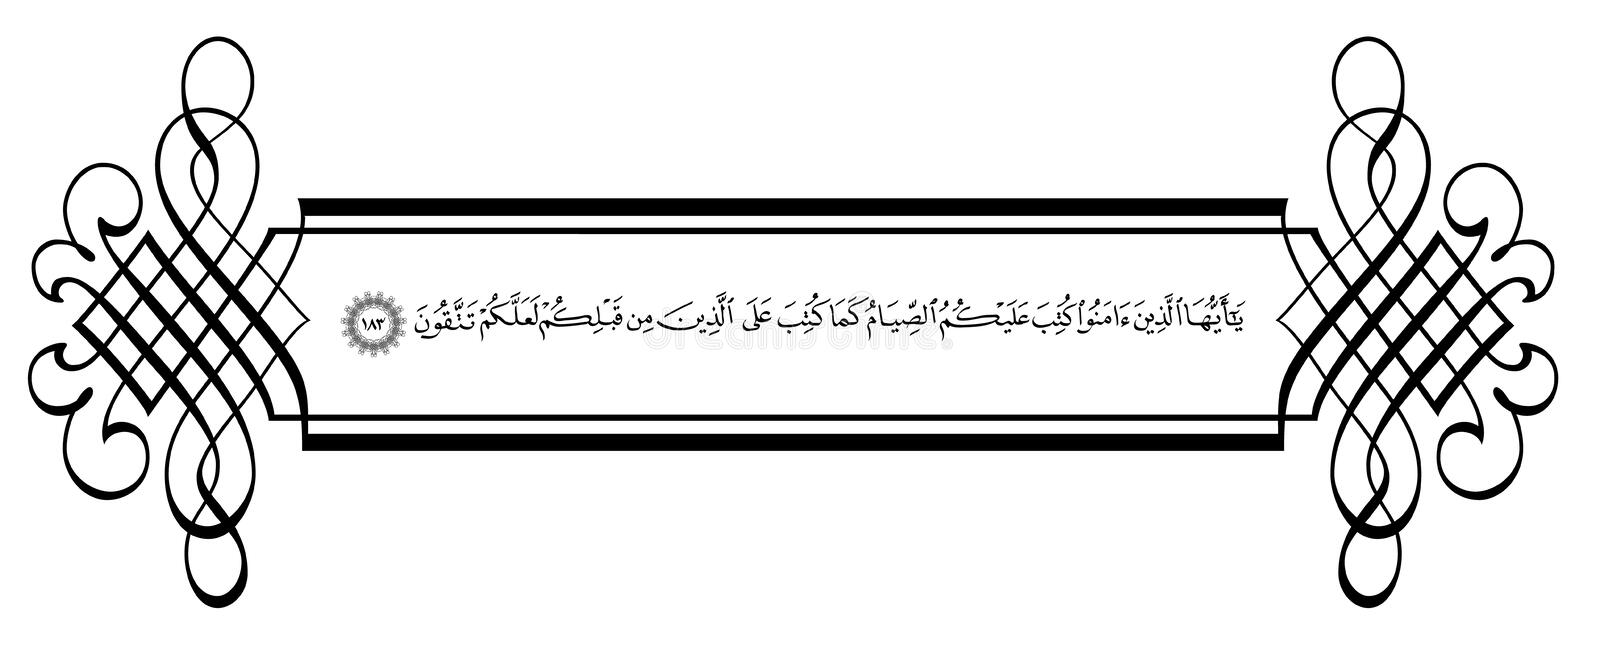 Calligraphy from the Koran, Sura 2 verse 183. O YOU who believe You are prescribed fasting, as it was prescribed to your. Predecessors - - perhaps you will be stock illustration